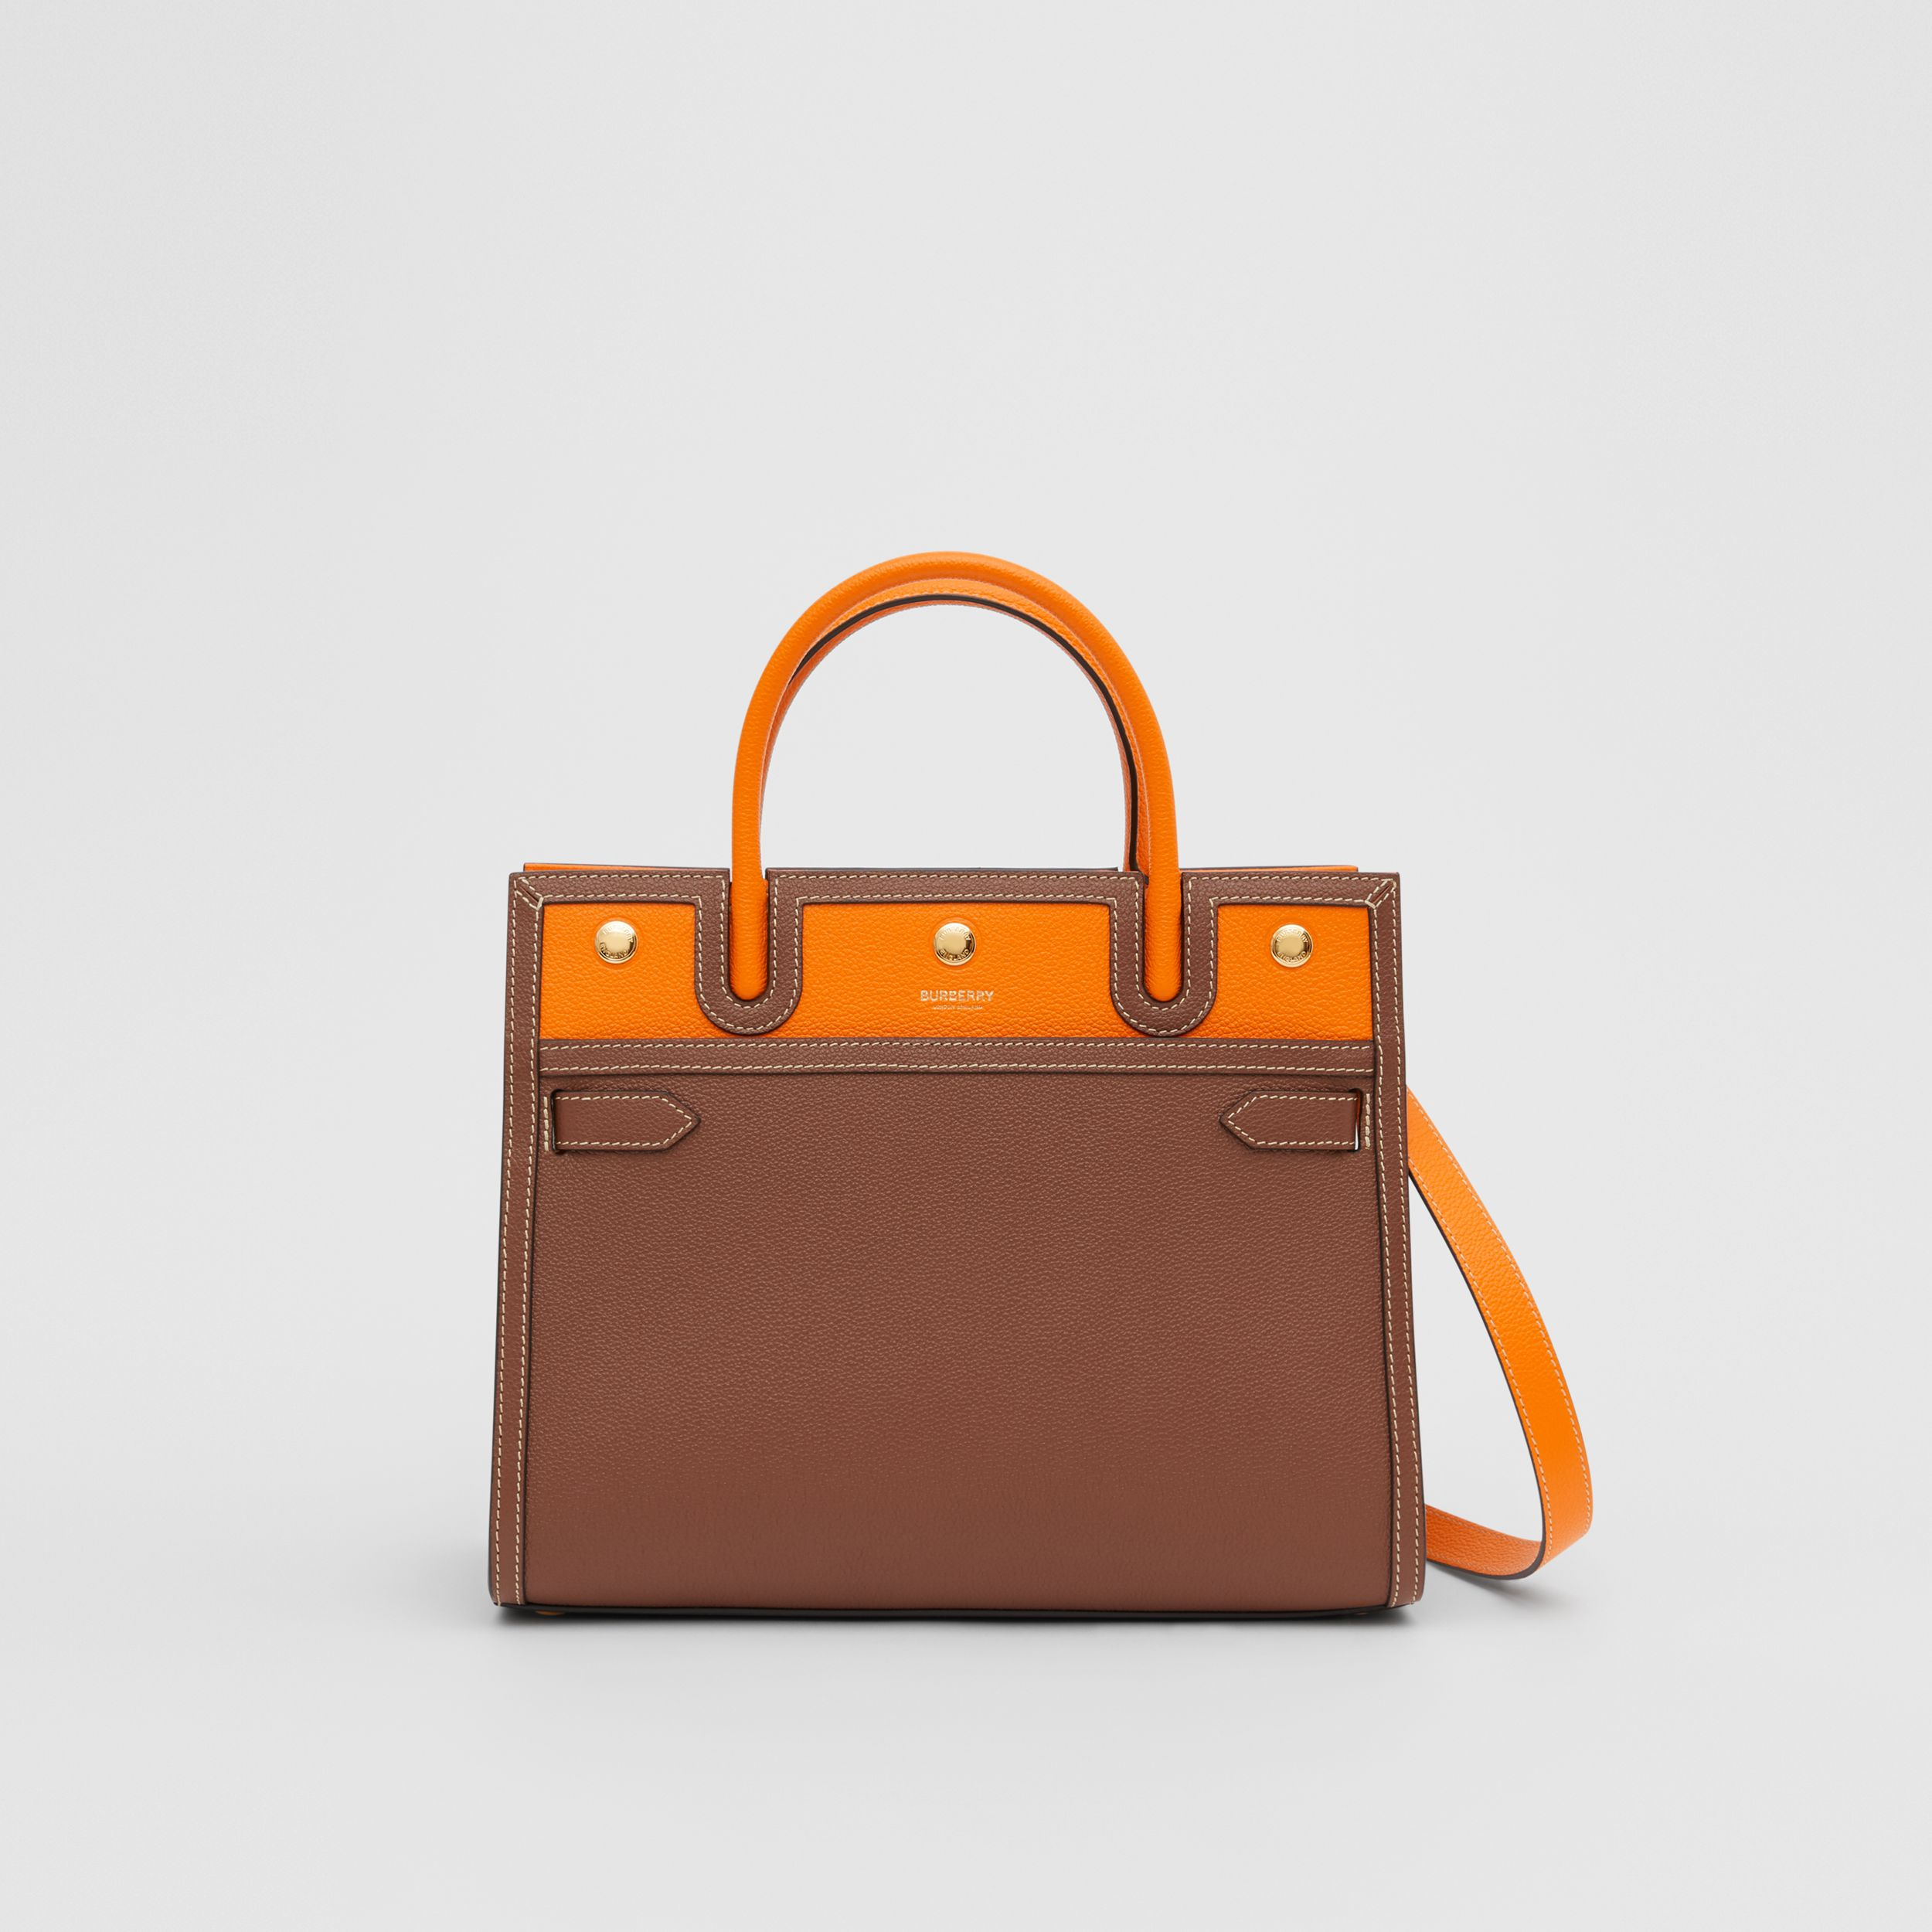 Small Leather Two-handle Title Bag in Tan/bright Orange - Women | Burberry - 1